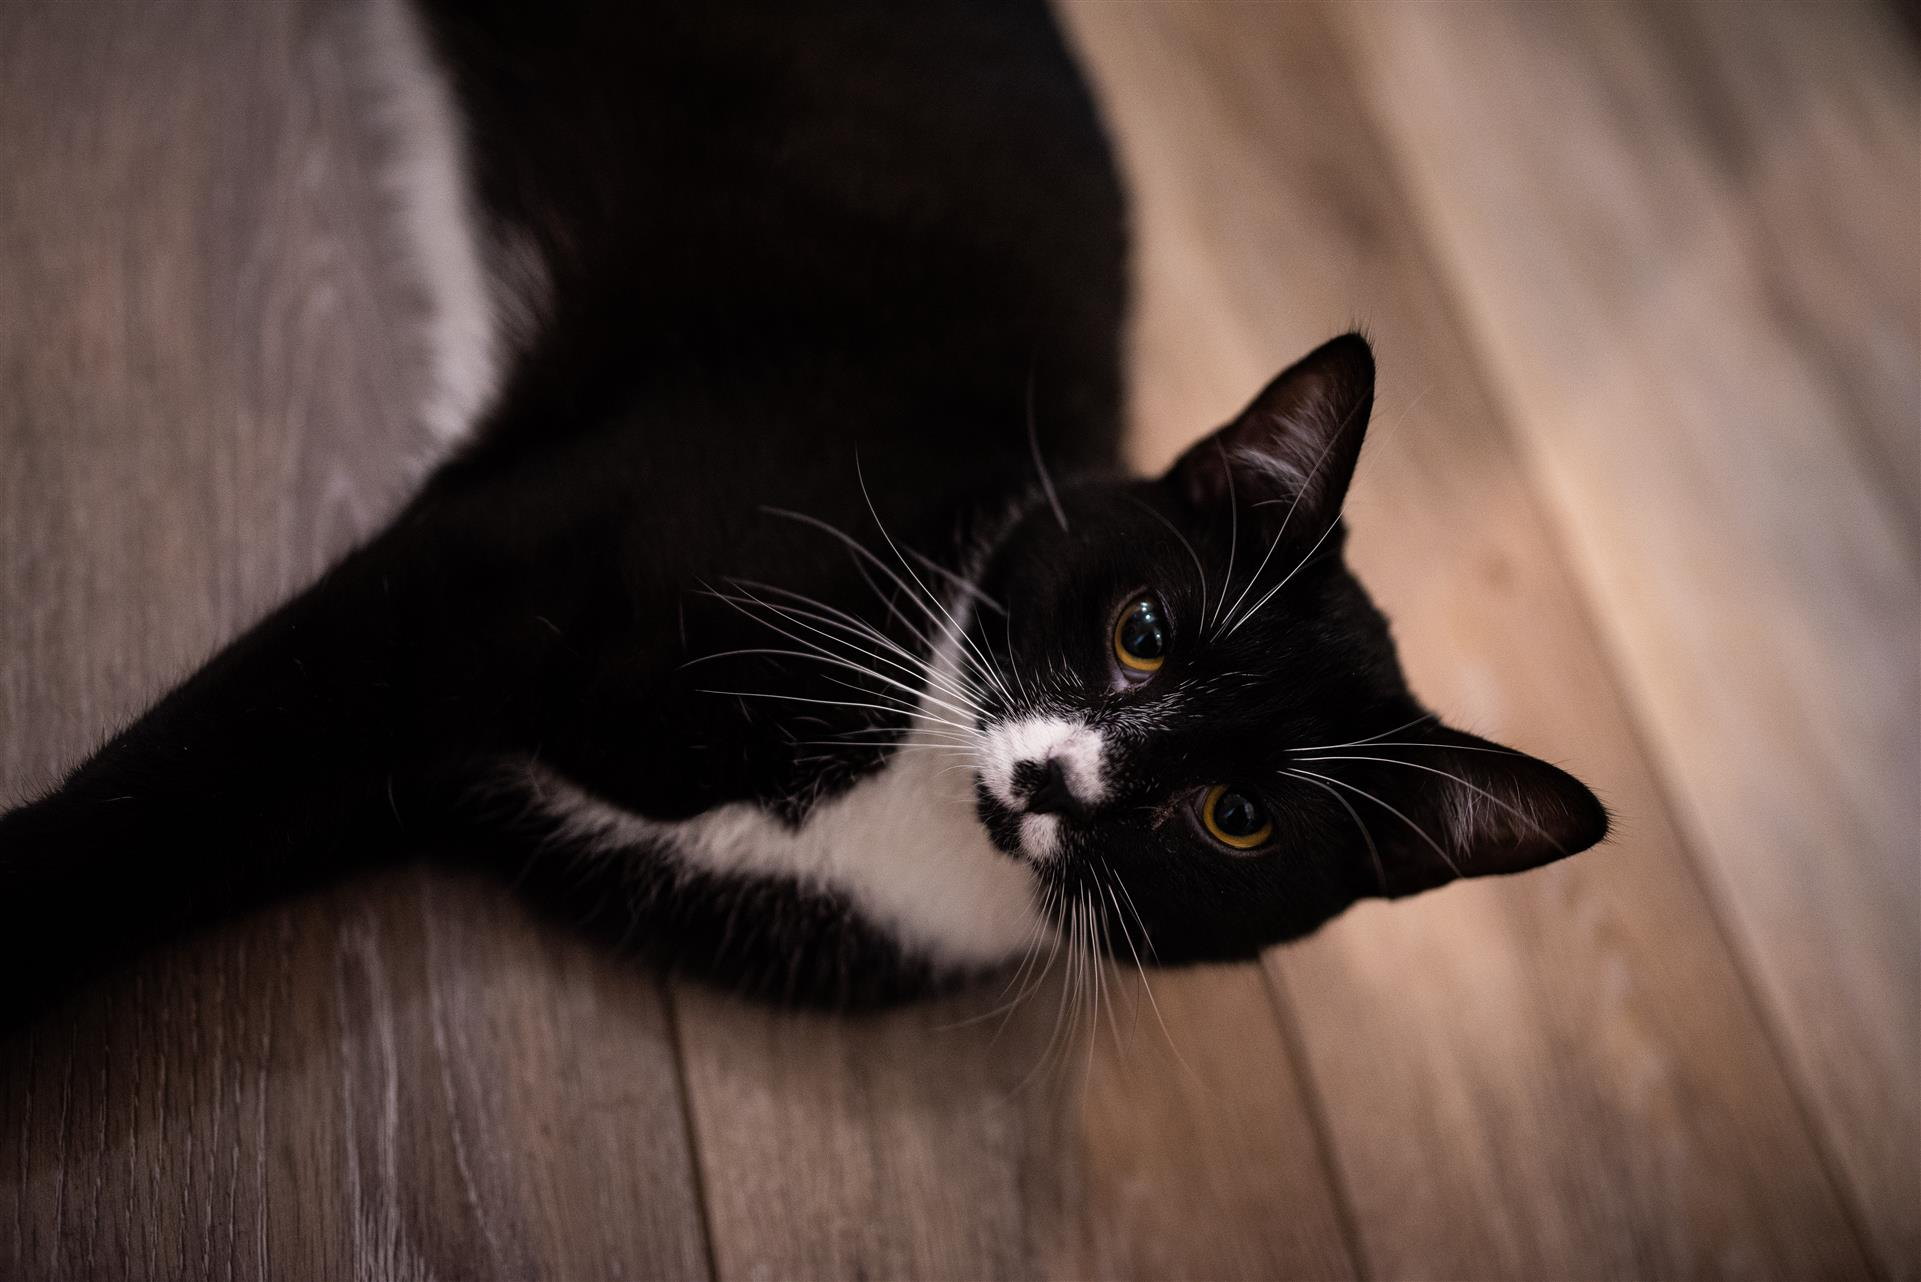 tuxedo cat laying on the ground